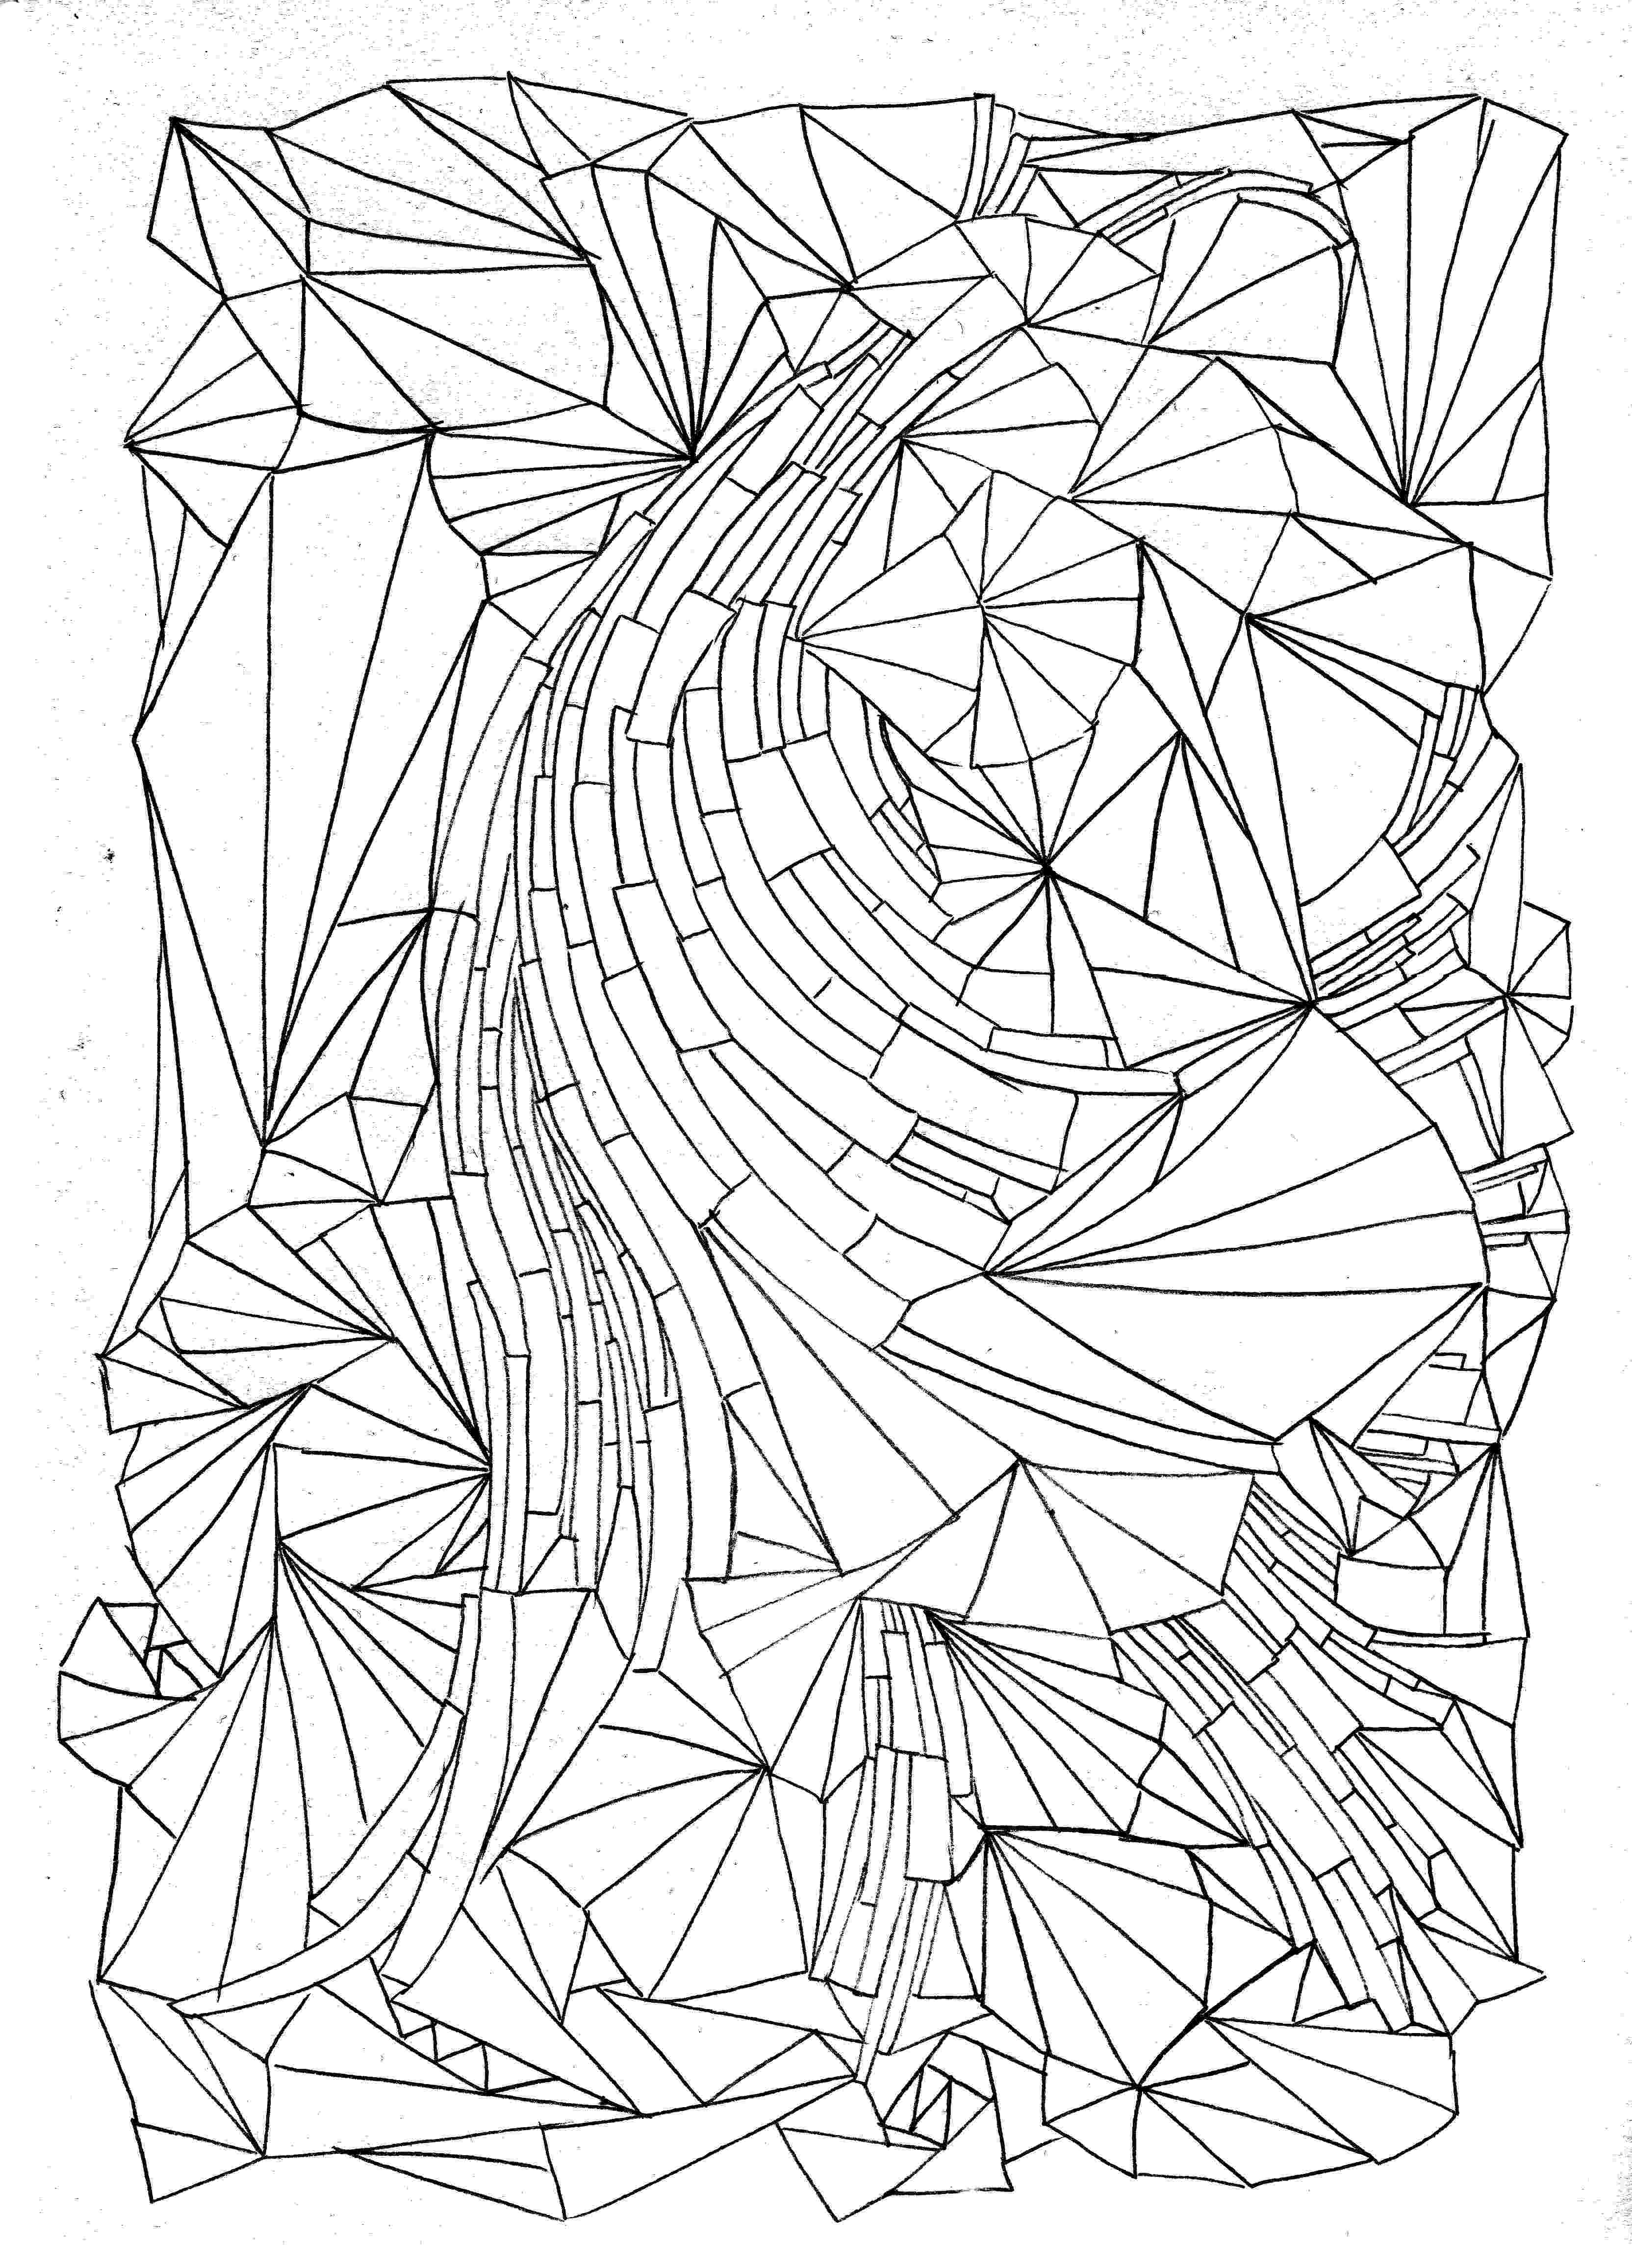 coloring book pages to print free coloring book pages to print free book coloring print to free pages